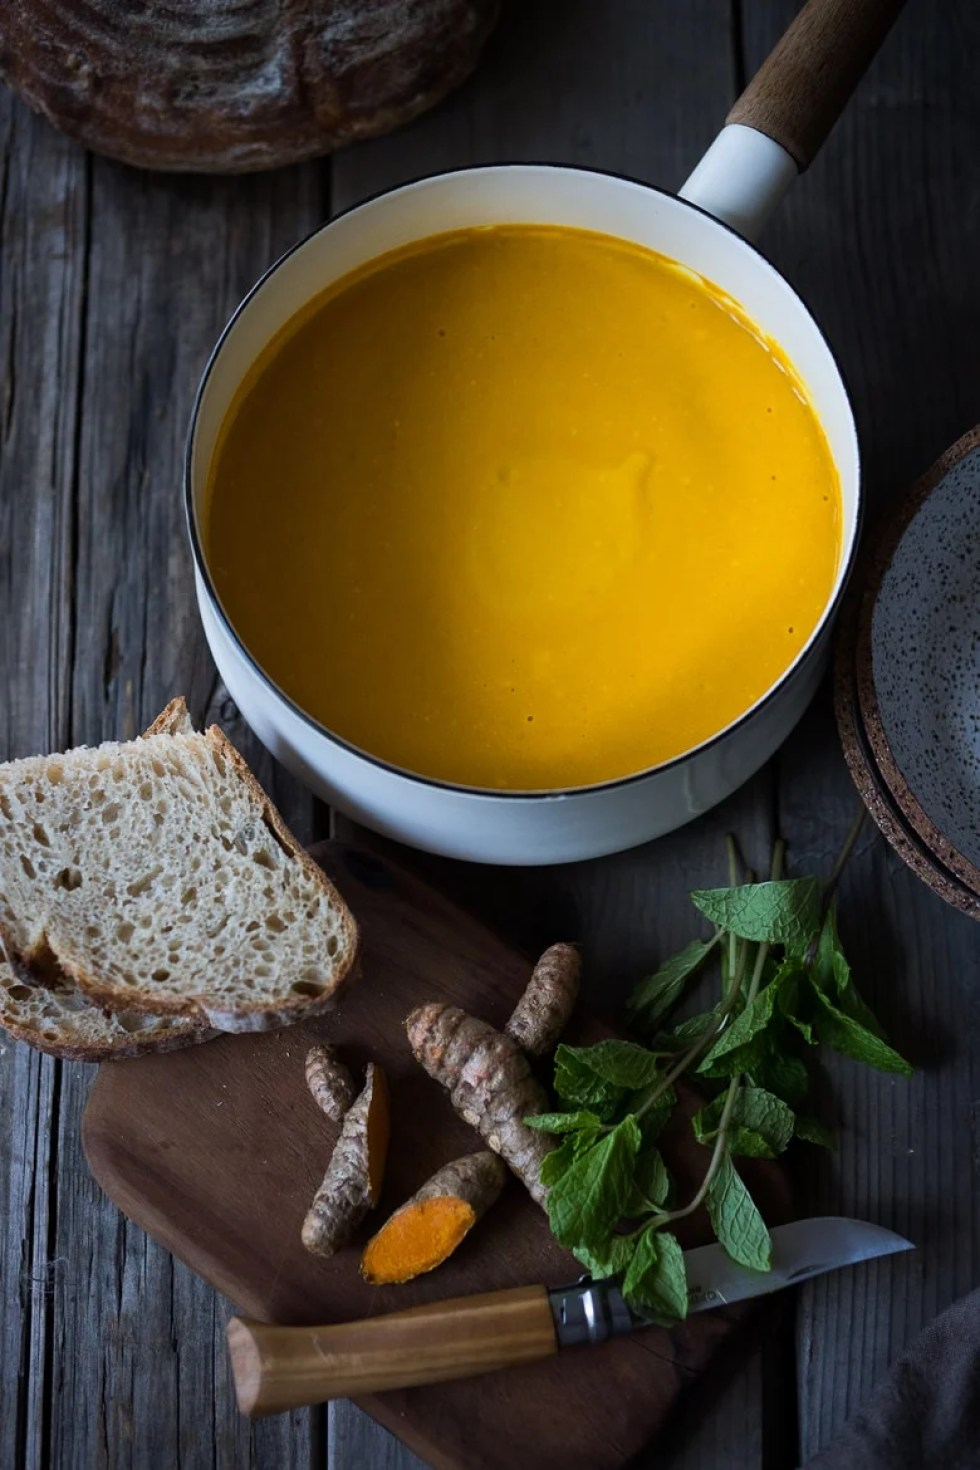 A delicious, healthy recipe for Creamy Carrot Turmeric Soup with Coconut Milk and ginger. Fresh turmeric and mint gives this soup its exotic flavor. Vegan. | www.feastingathome.com